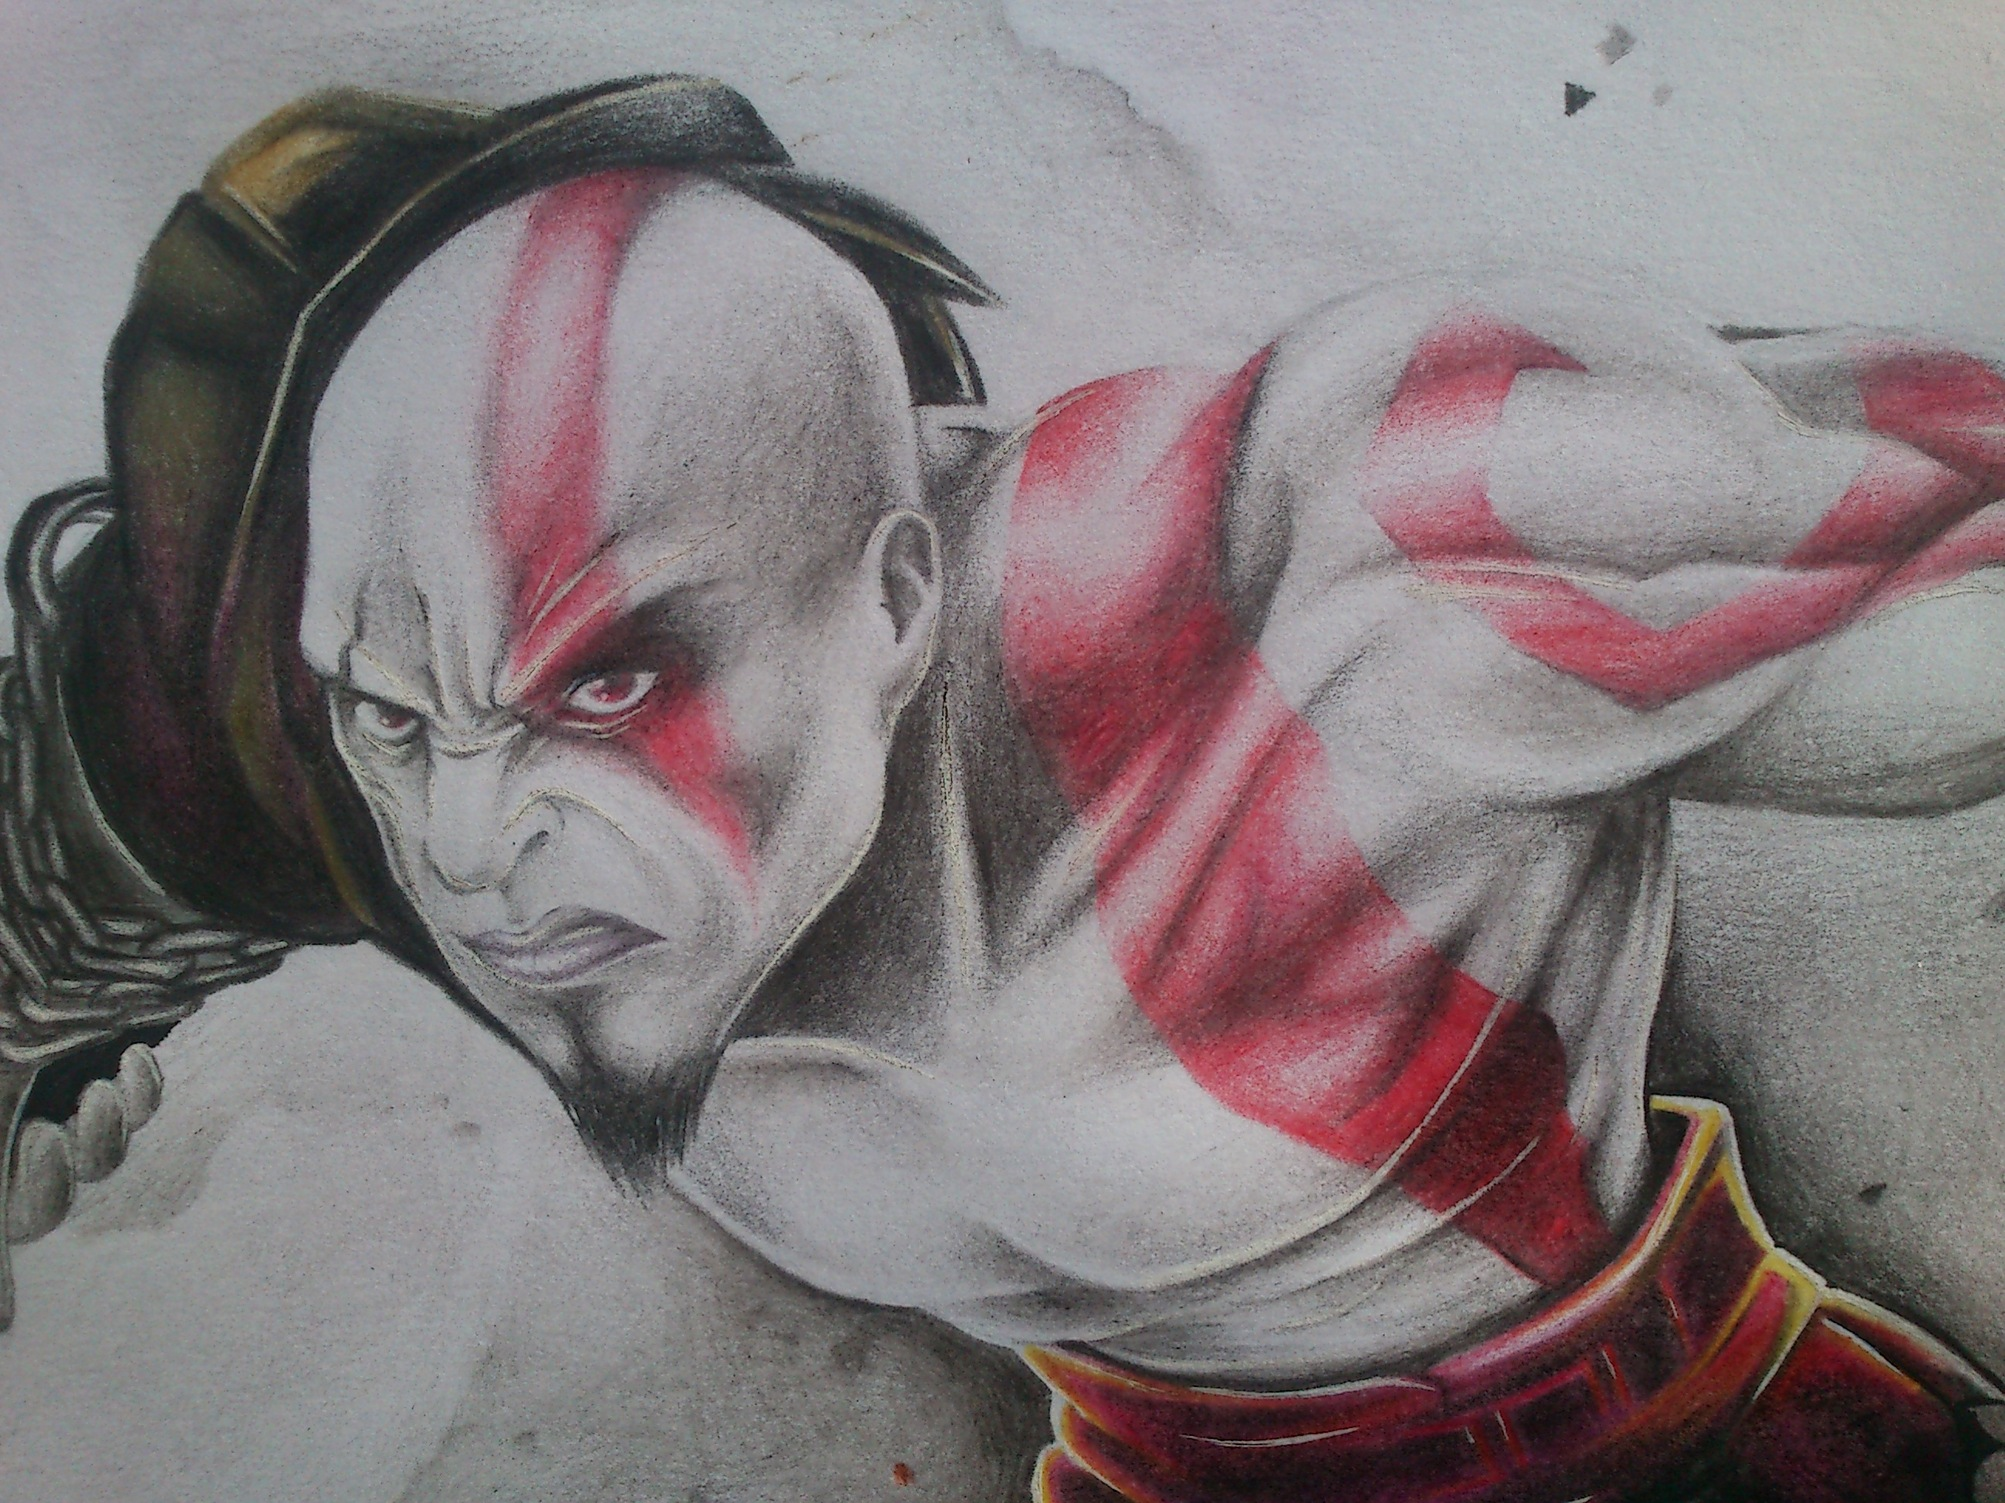 dibujo kratos god of war (yras)